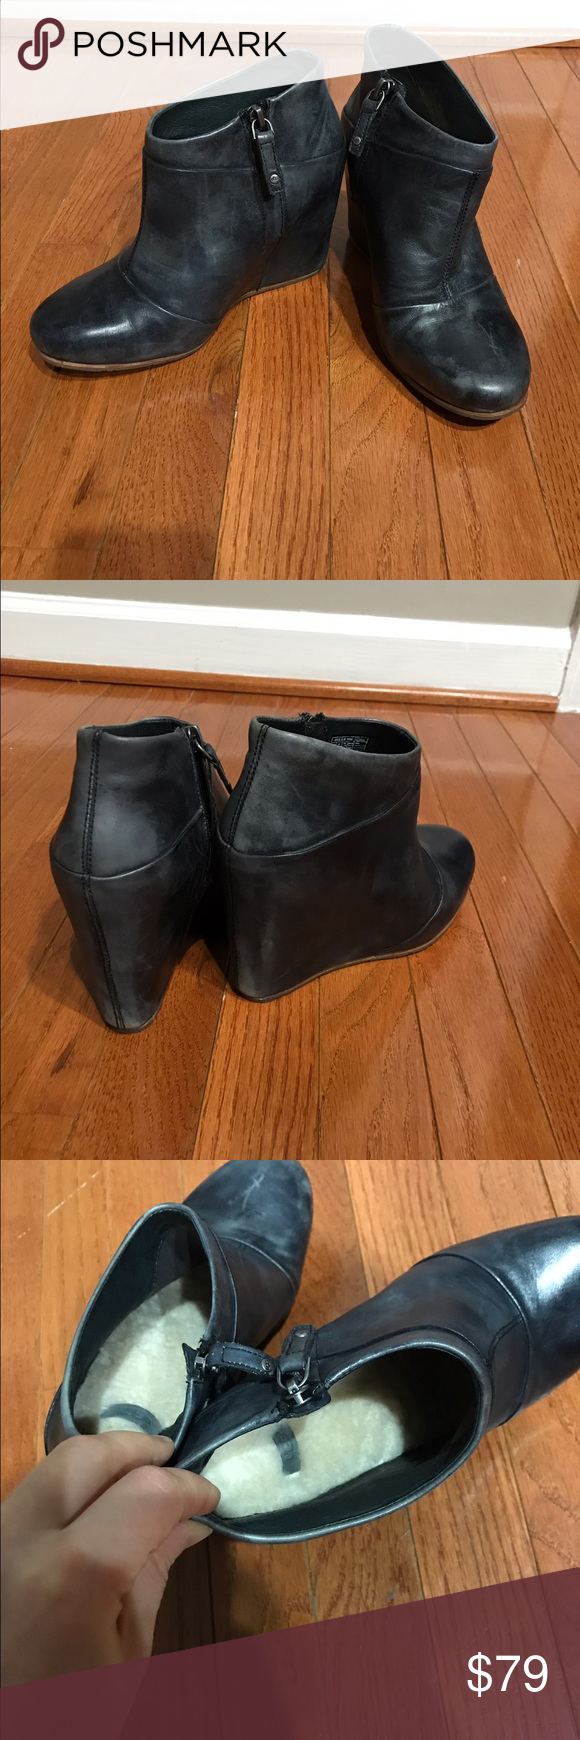 e7a71a537bf Ugg Carmine Wedge Ankle Booties Size 7 They re worn a few times. Grayish  black leather booties are size 7